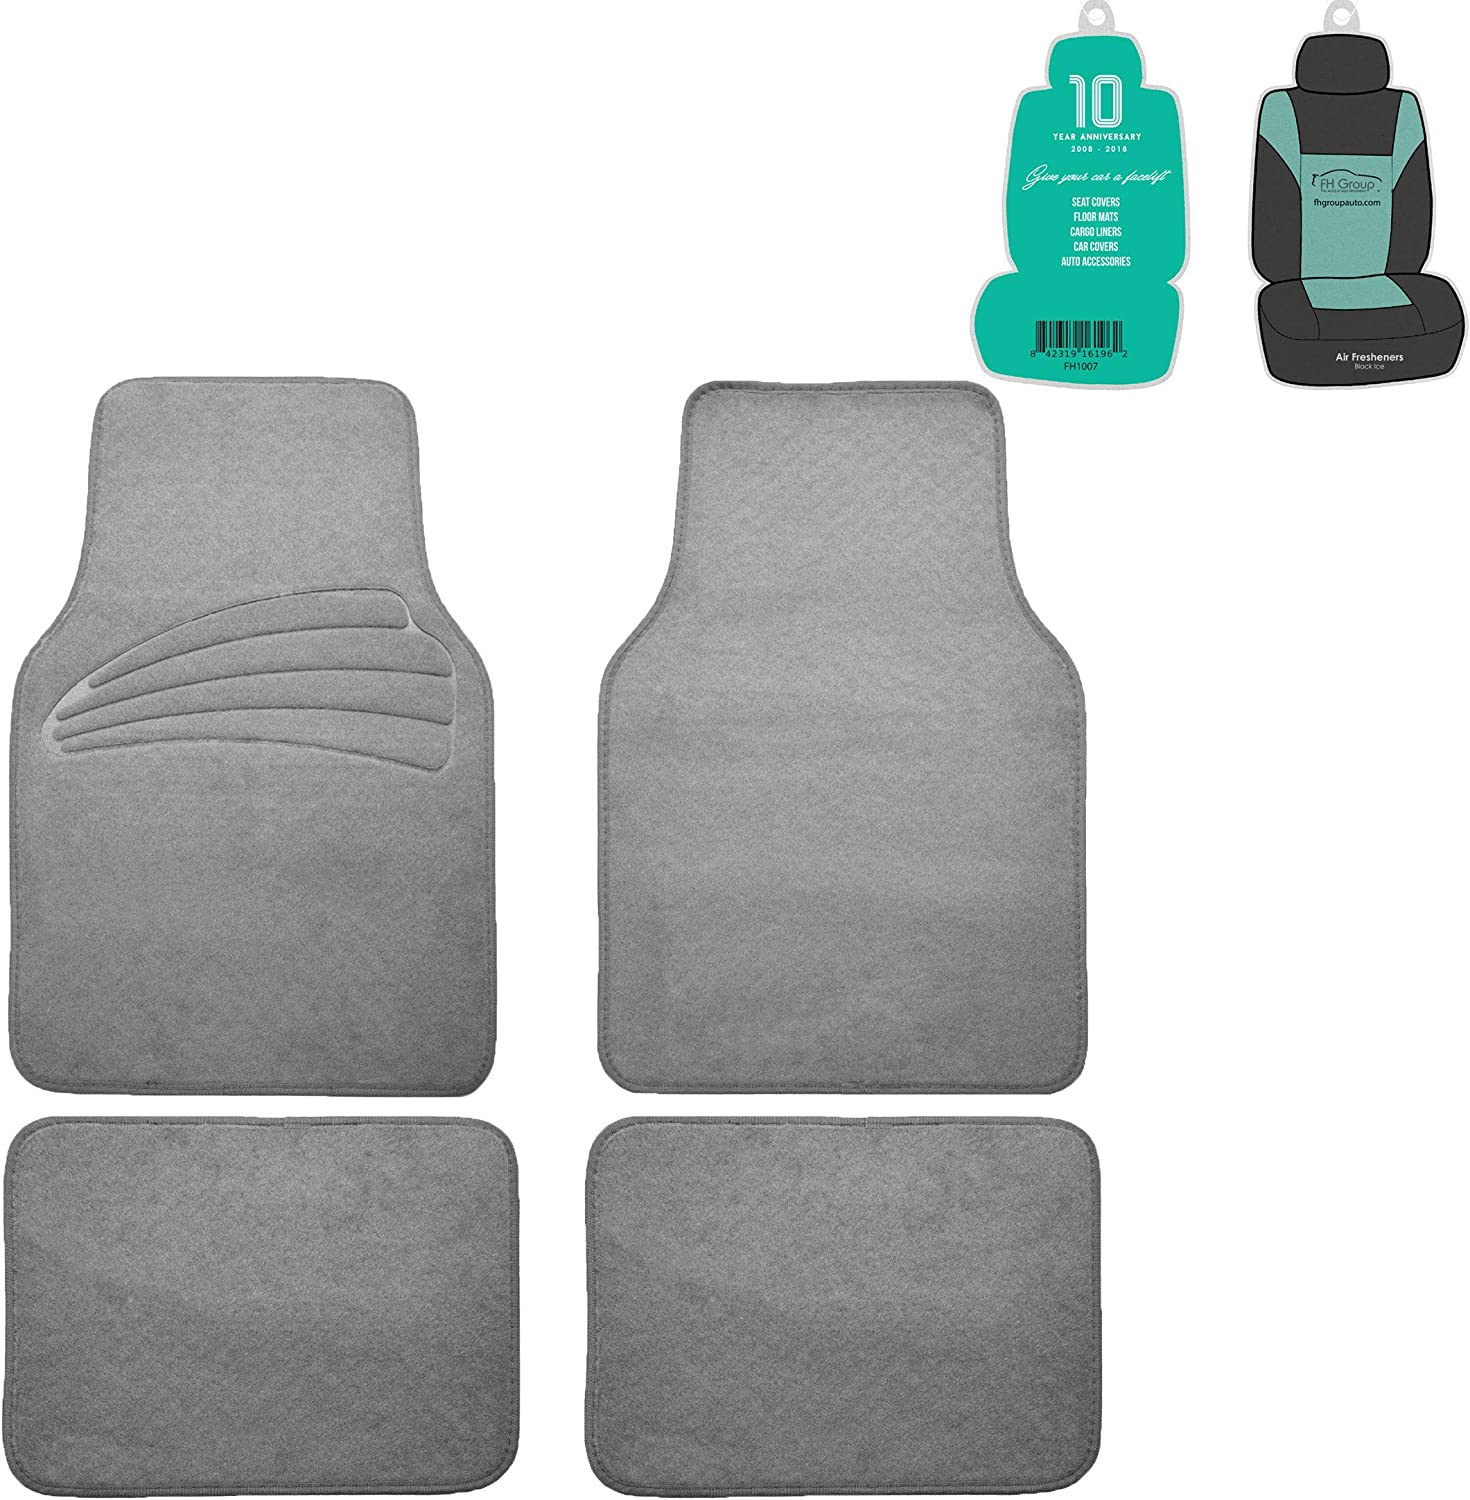 FH Group F14401 Premium Carpet Floor Mats with Heel Pad, Gray Color w. Free Air Freshener- Fit Most Car, Truck, SUV, or Van